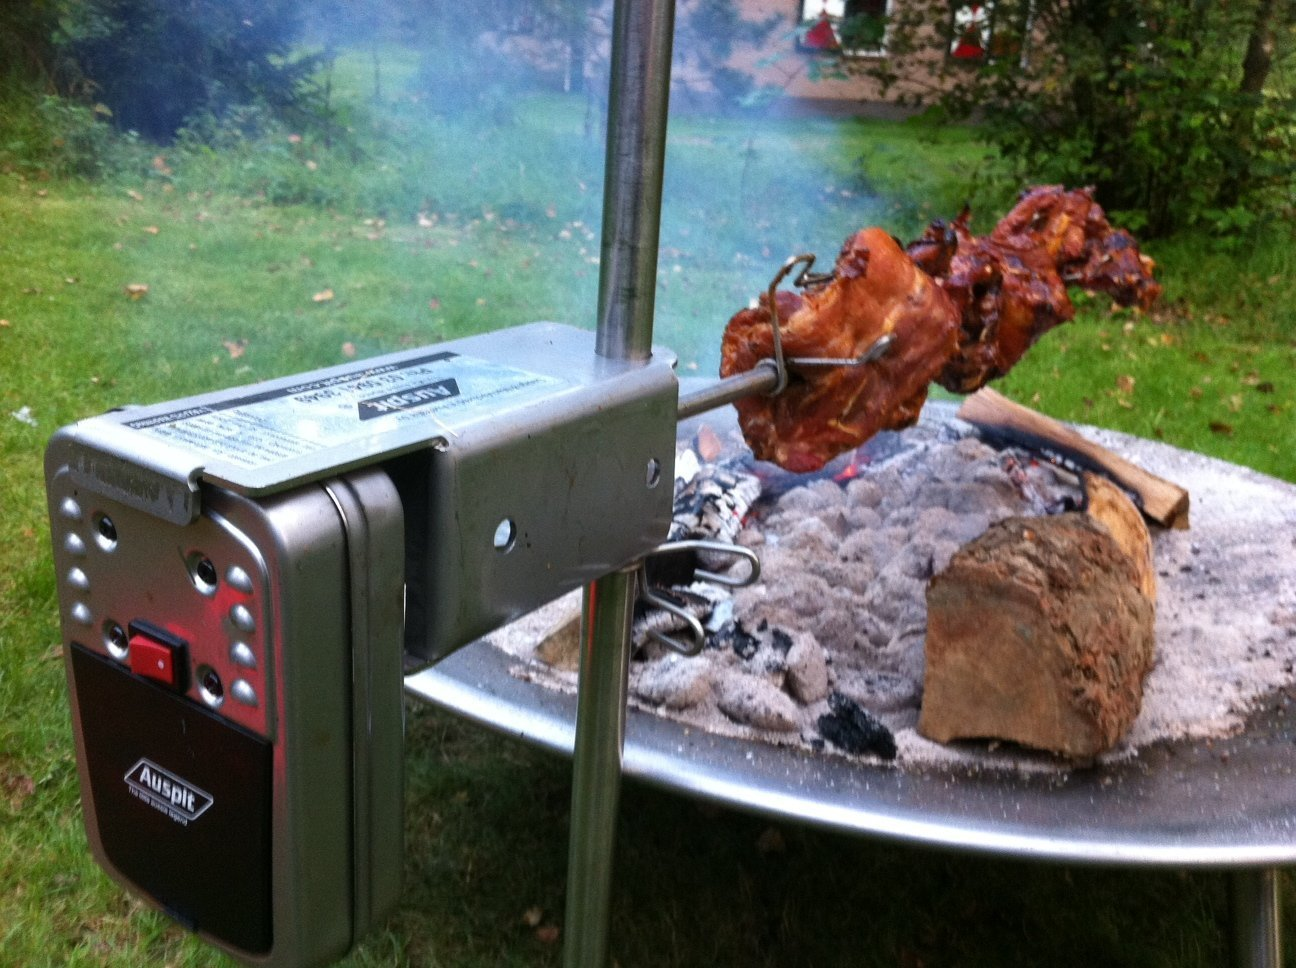 Auspit Stainless Steel Set (Best Rotisserie in the World!)